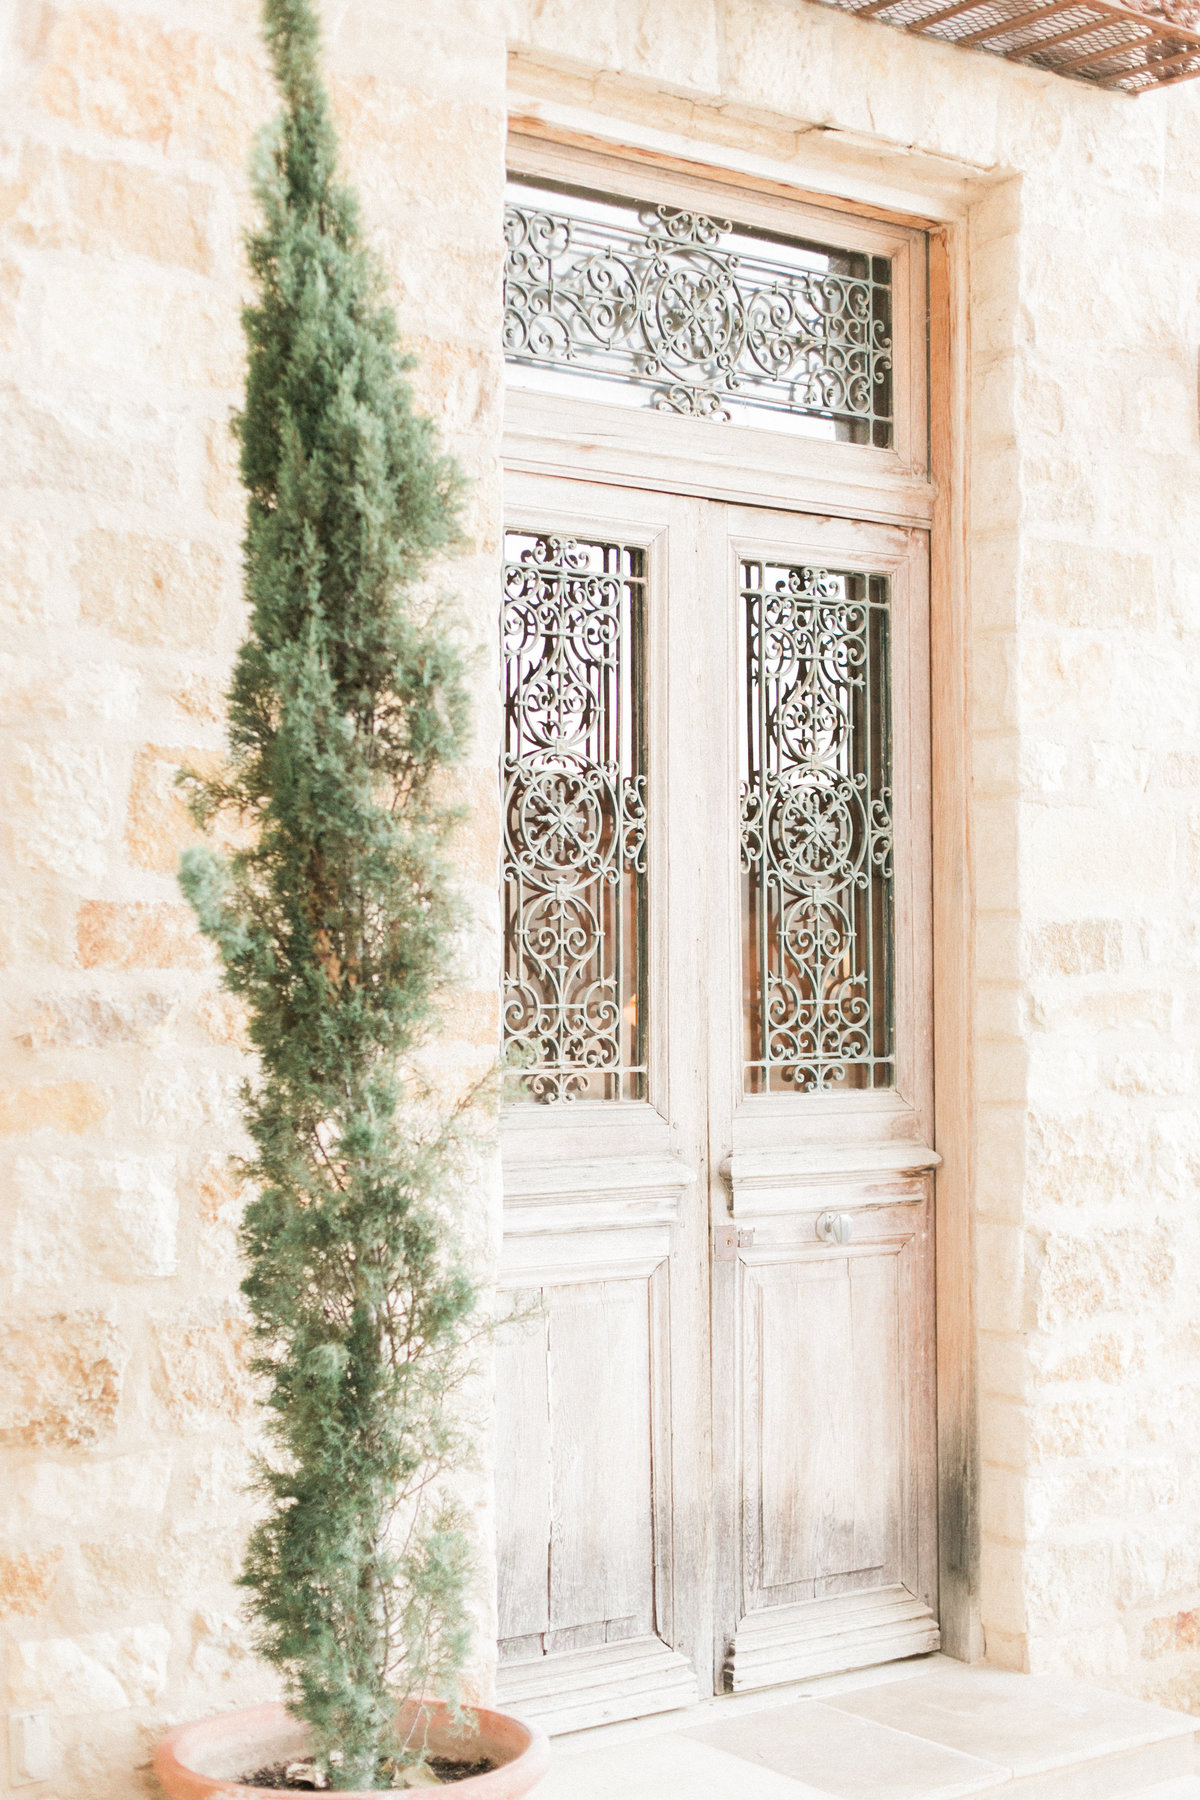 Italian Wooden Door Sunstone Villa